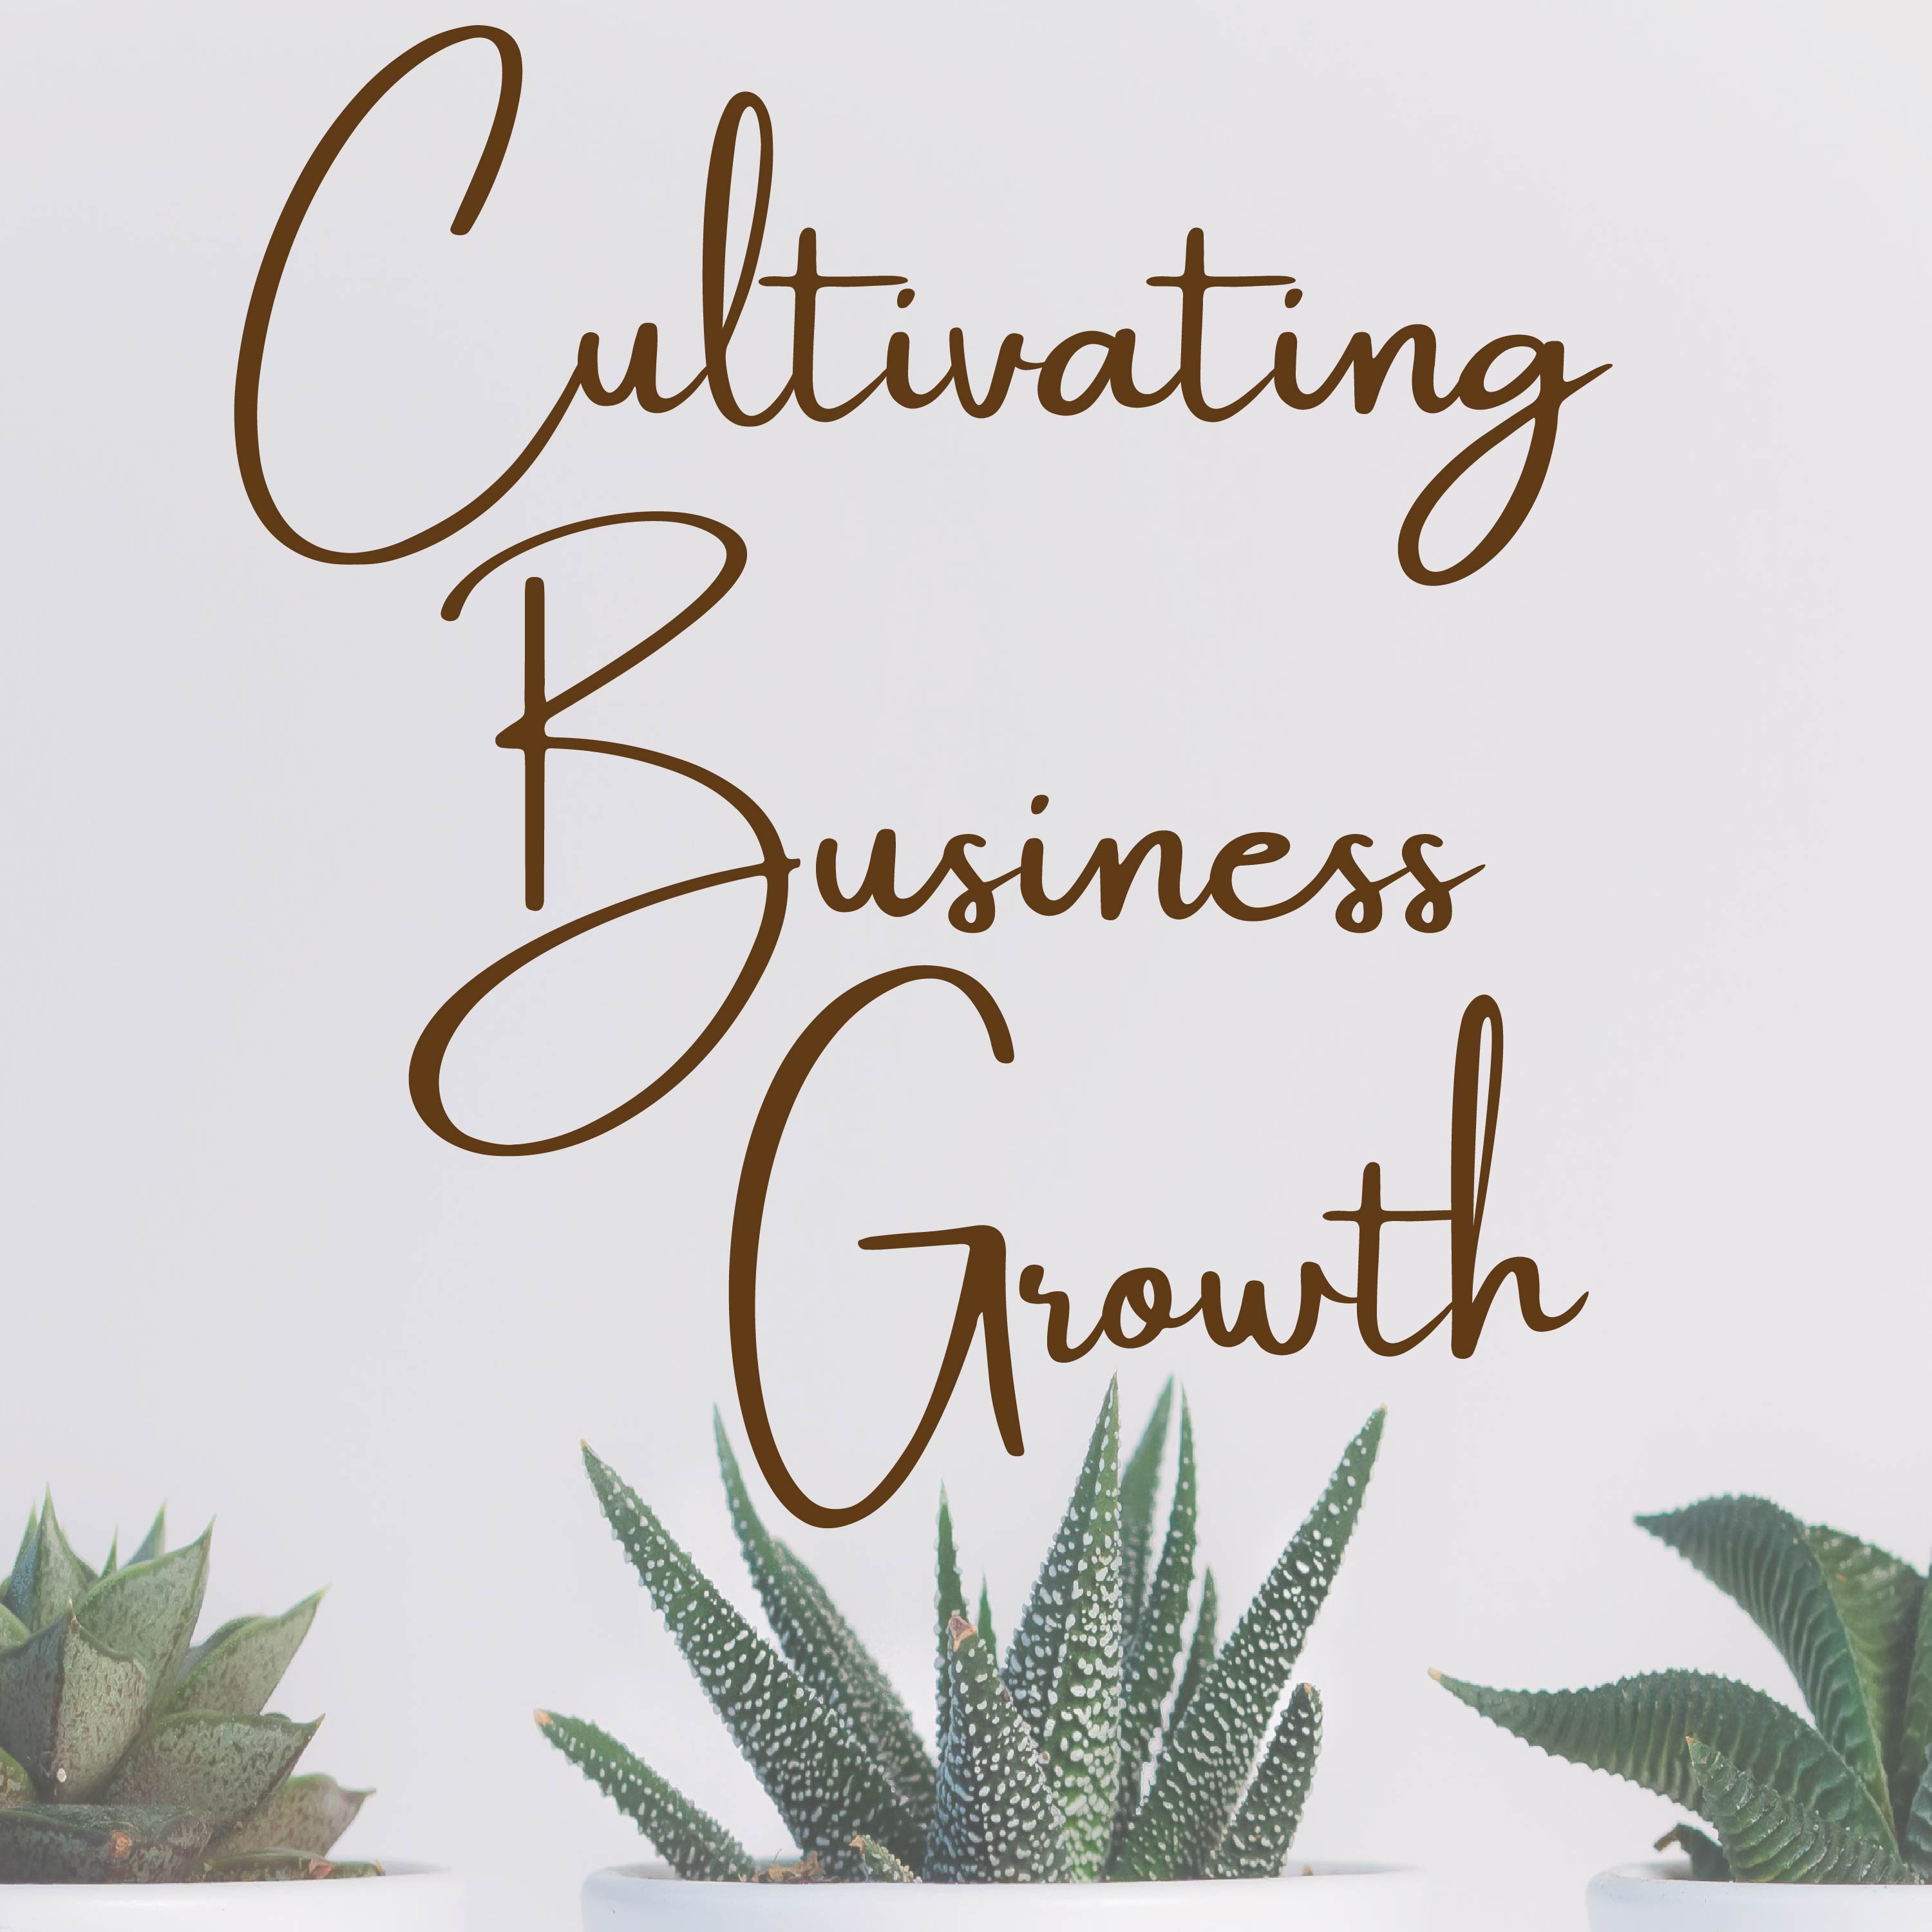 Cultivating Business Growth show art